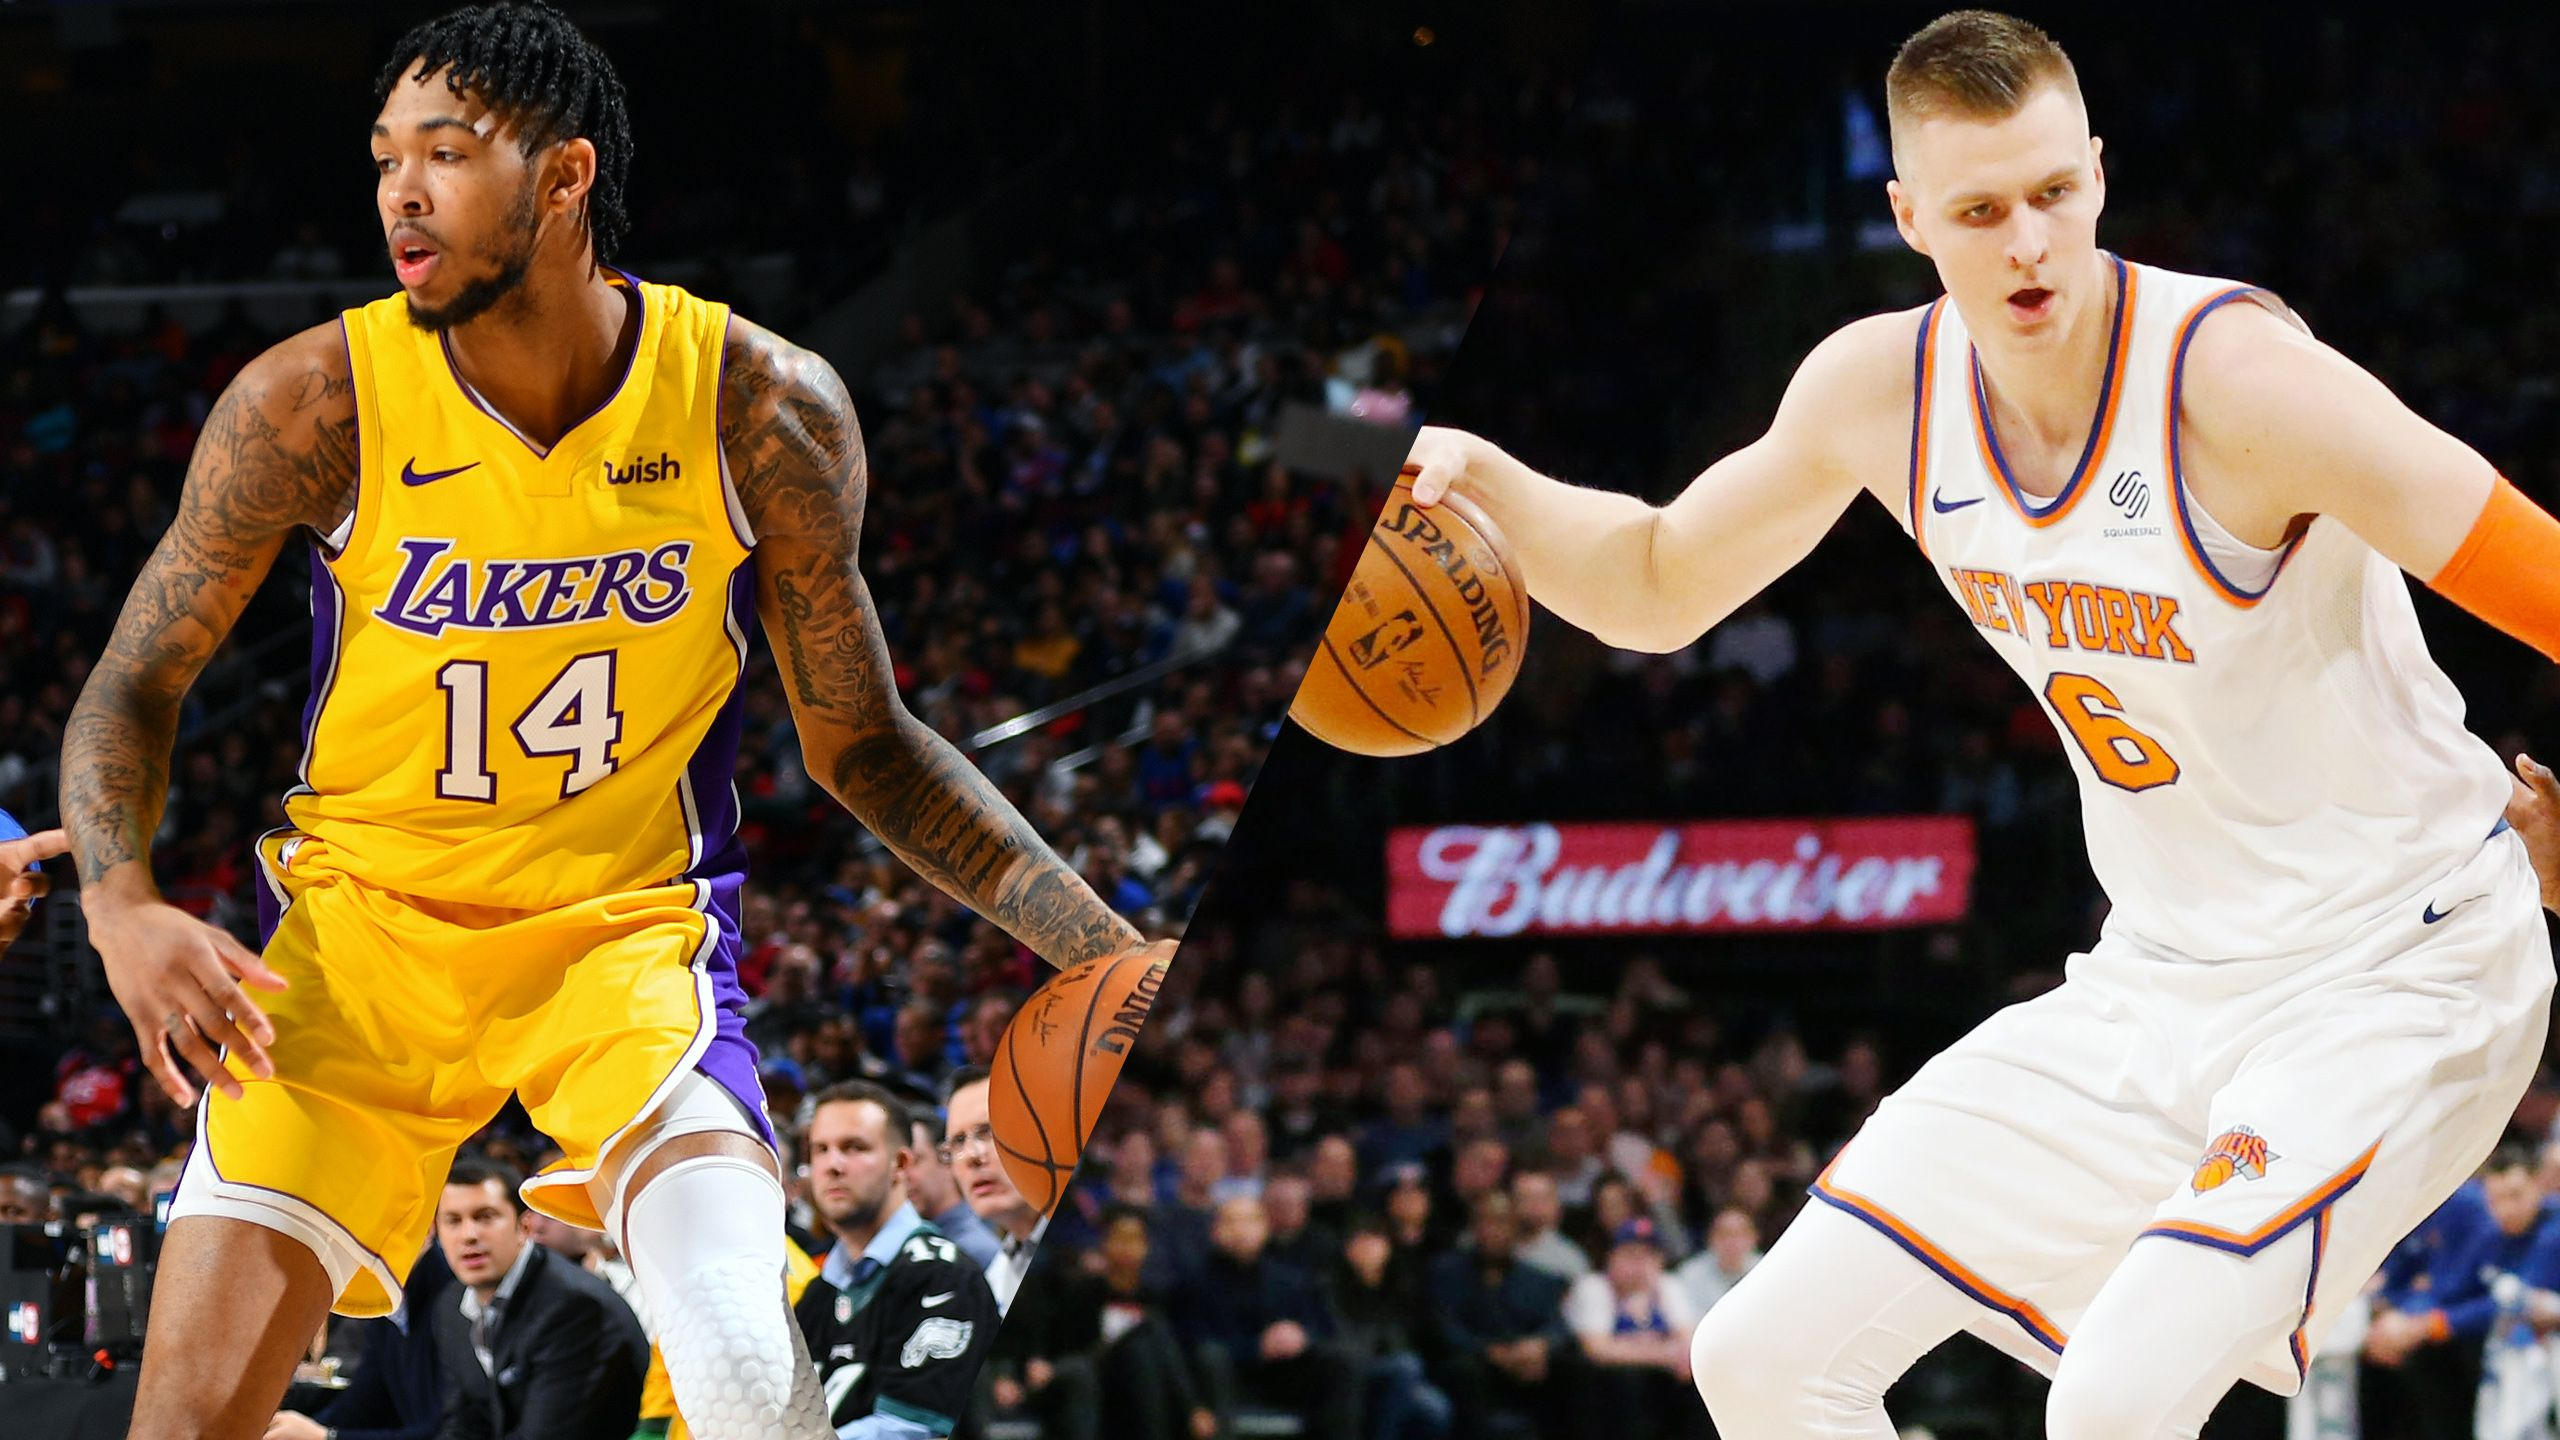 Los Angeles Lakers vs. New York Knicks